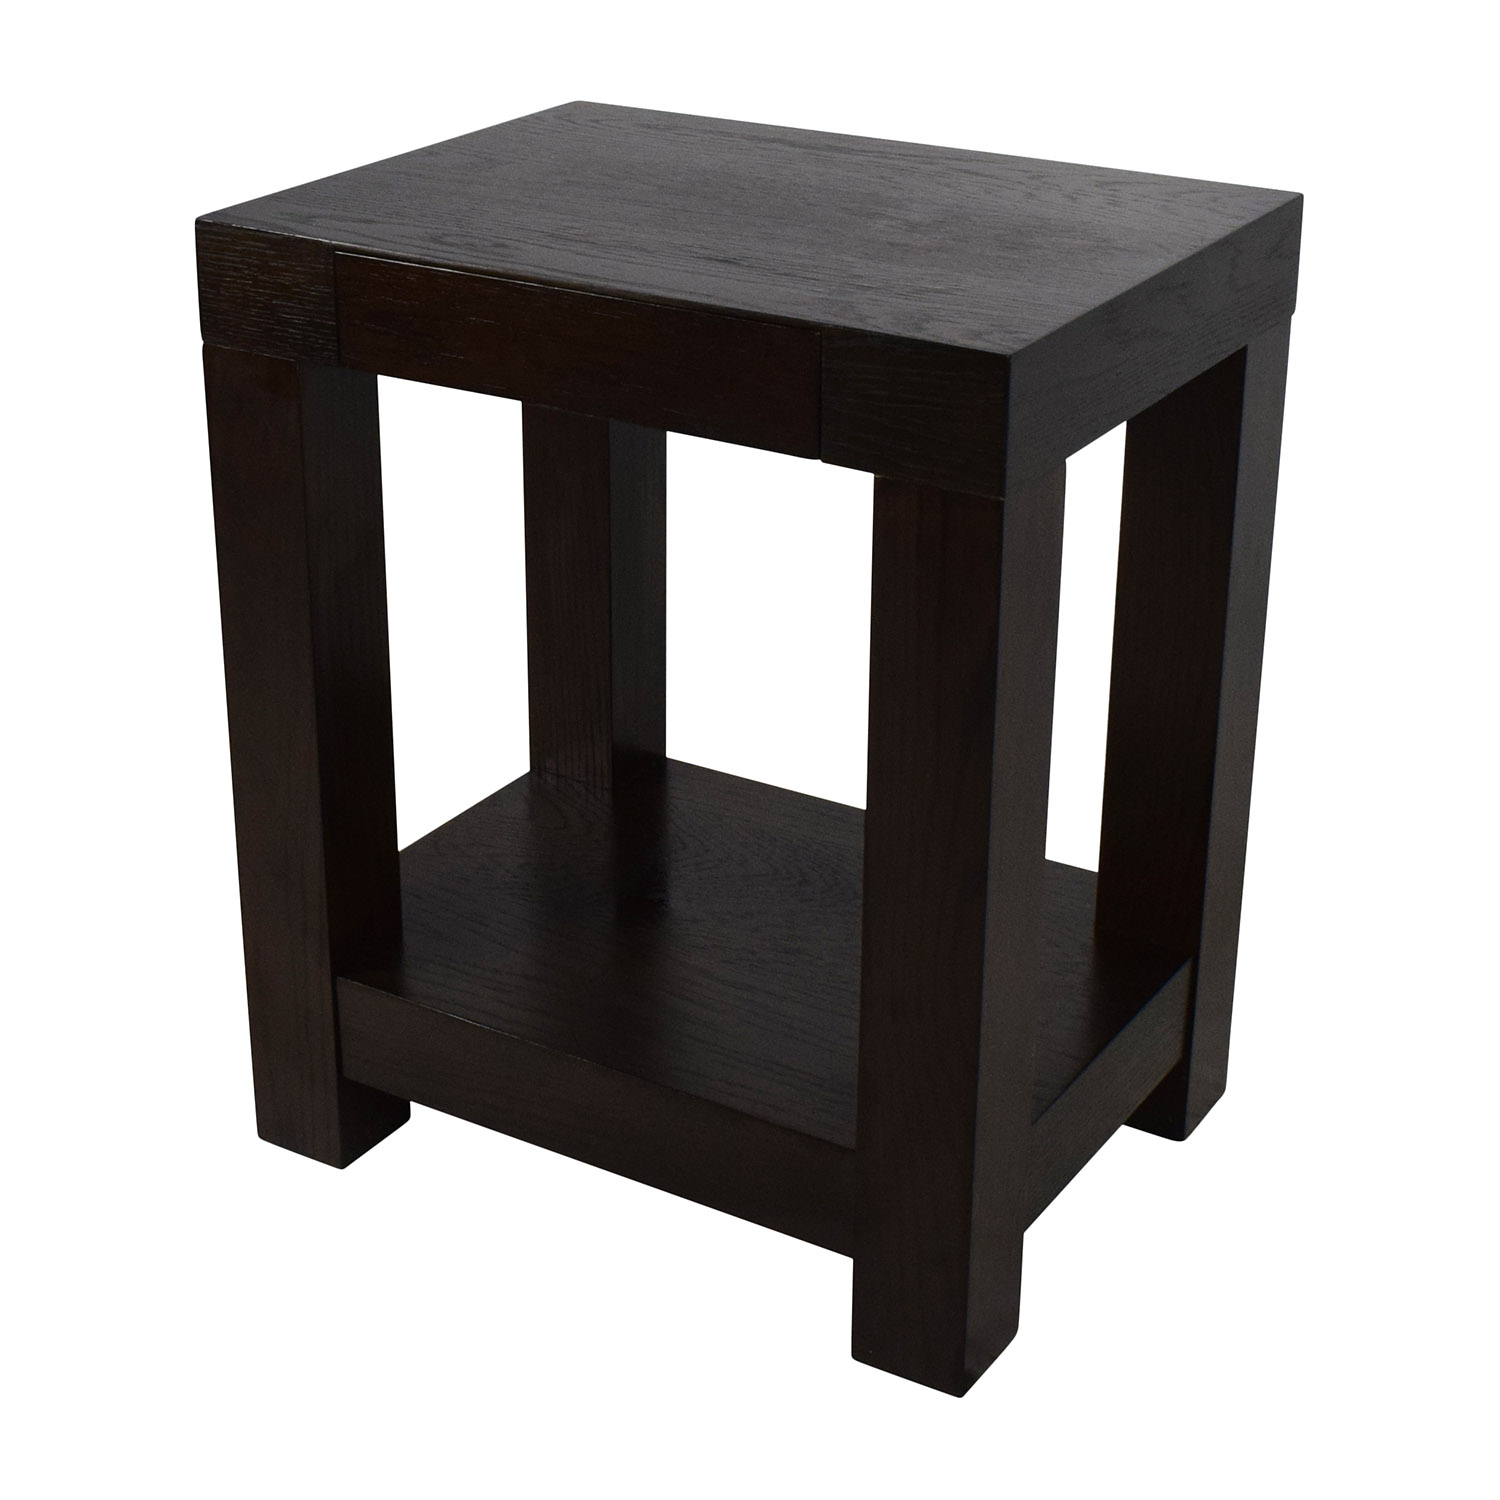 OFF West Elm West Elm Parsons End Table Tables - West elm parsons end table